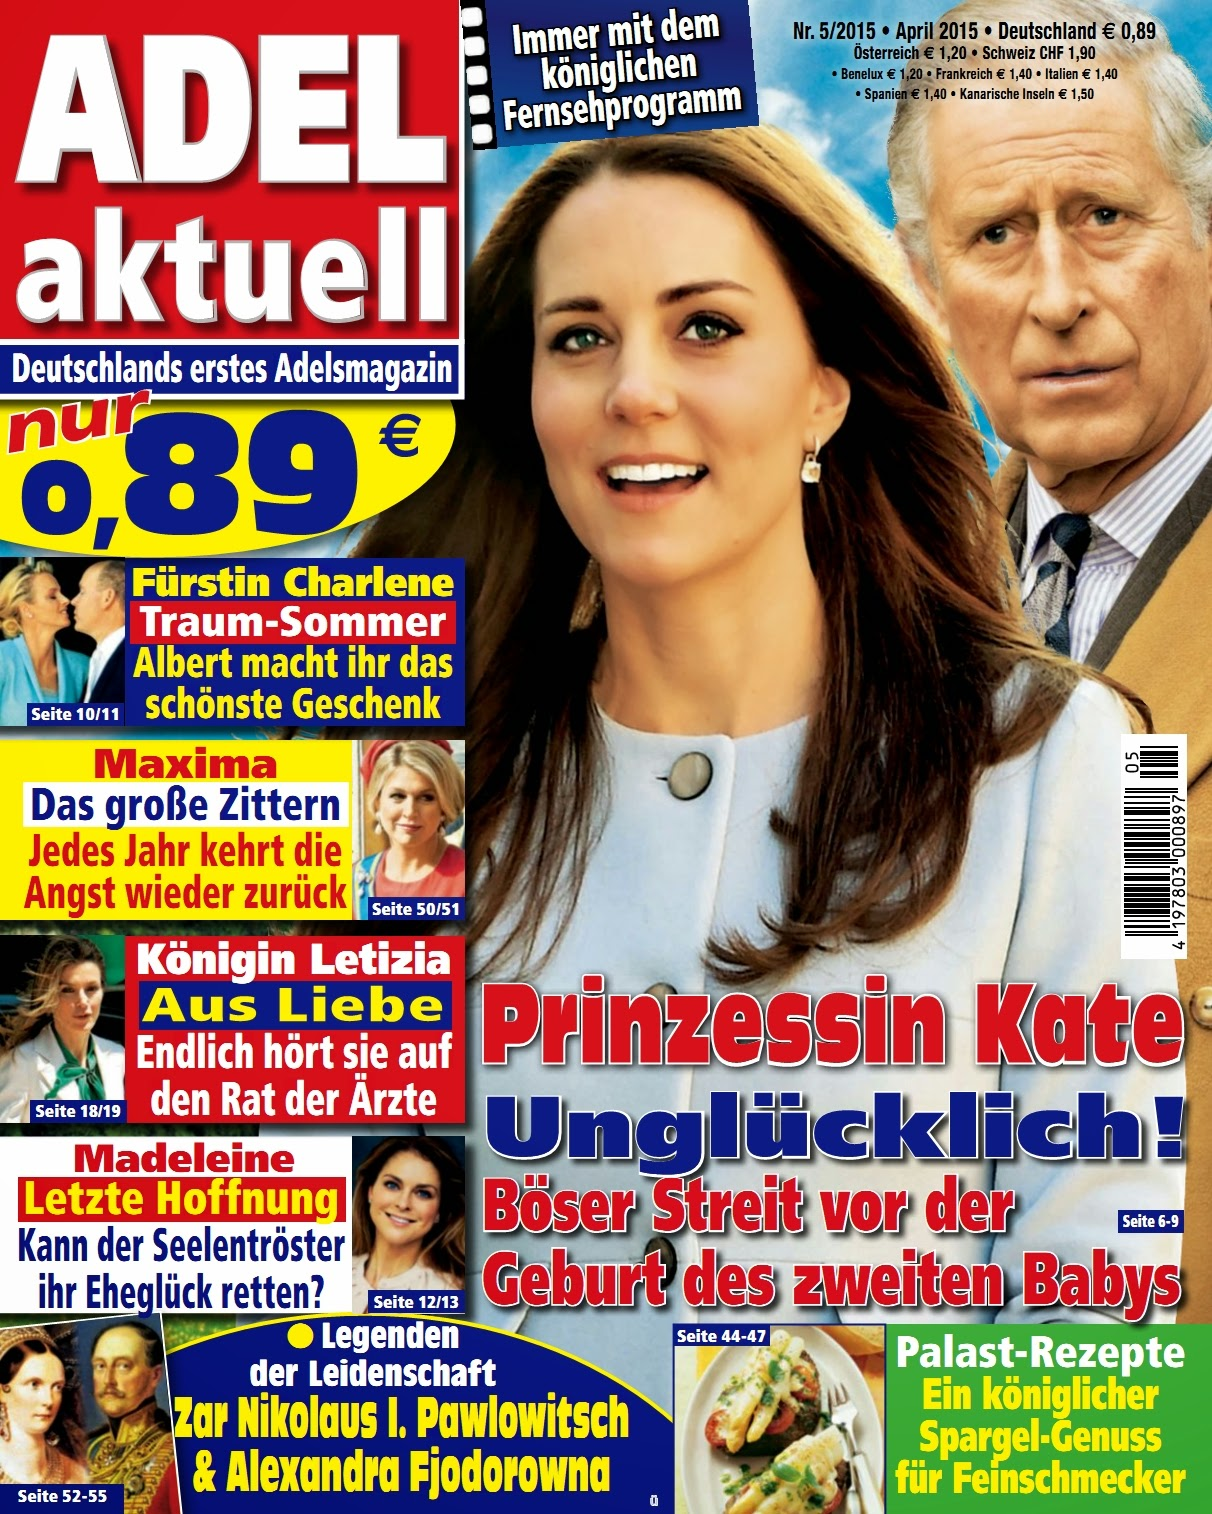 Princess, Duchess of Cambridge @ Kate Middleton - Adel Aktuell Germany, April 2015